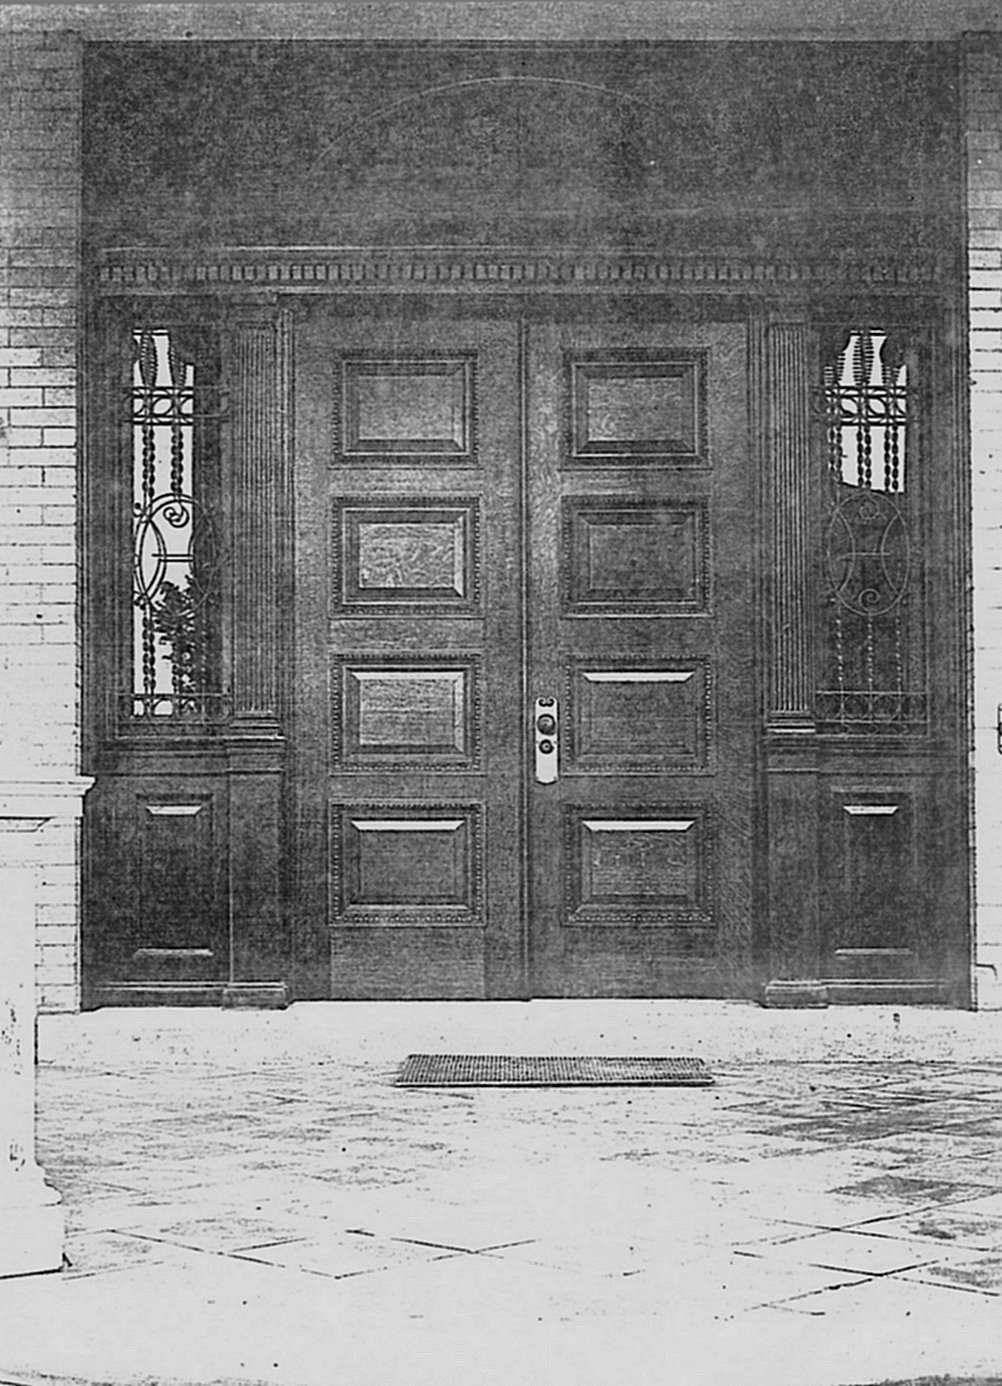 Hinkle-Murphy House, 1886 619 South 10th Street Minneapolis, Minnesota Architect: William Channing Whitney The outside front doors. Northwestern Architect Supplement Vol. 6. No. 7 1886 Minneapolis Library History Collection